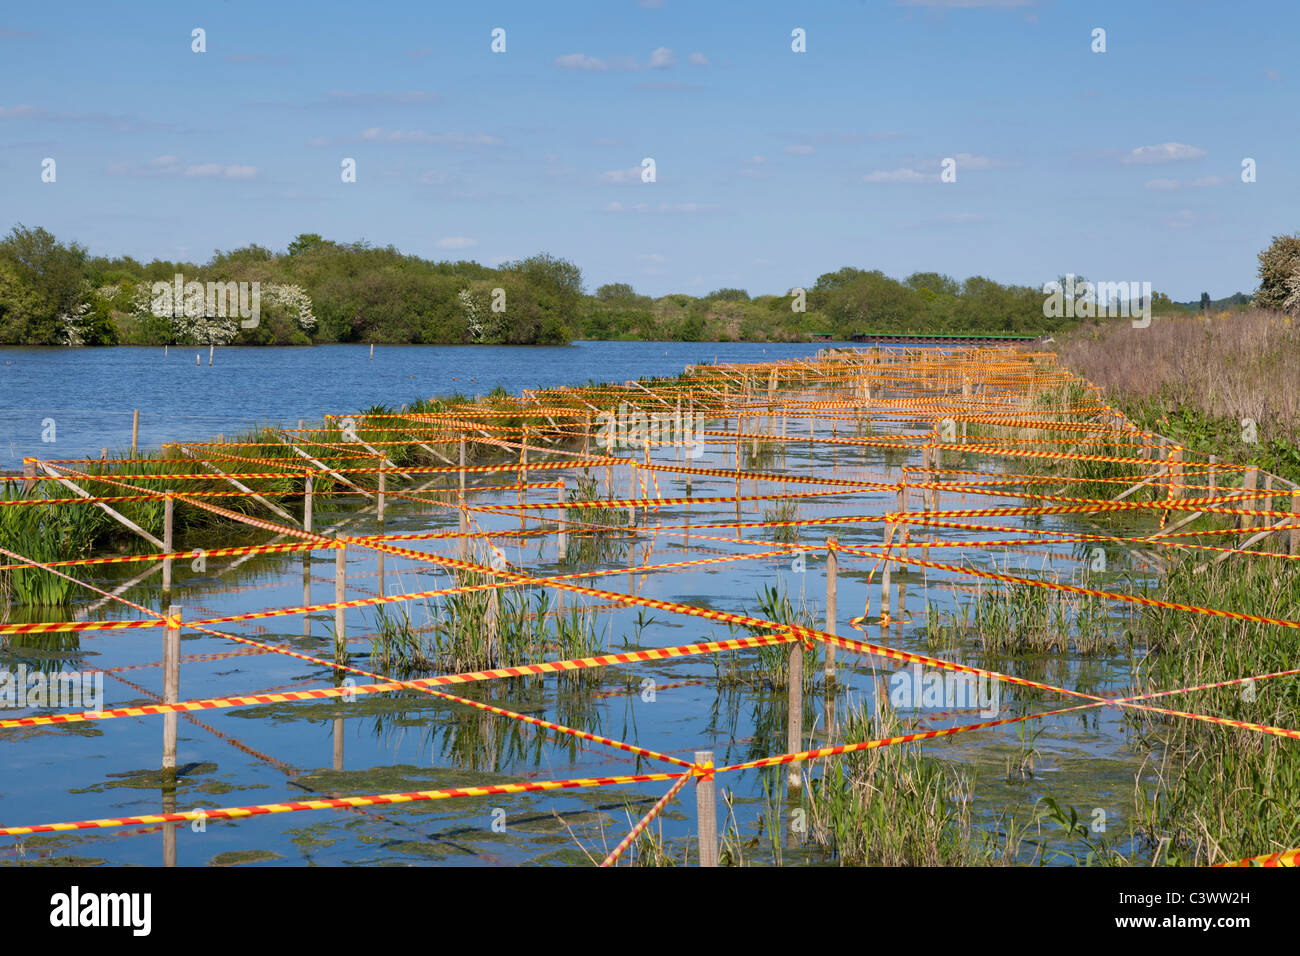 Attenborough Nature reserve creation of new reed beds Nottinghamshire England UK GB EU Europe - Stock Image